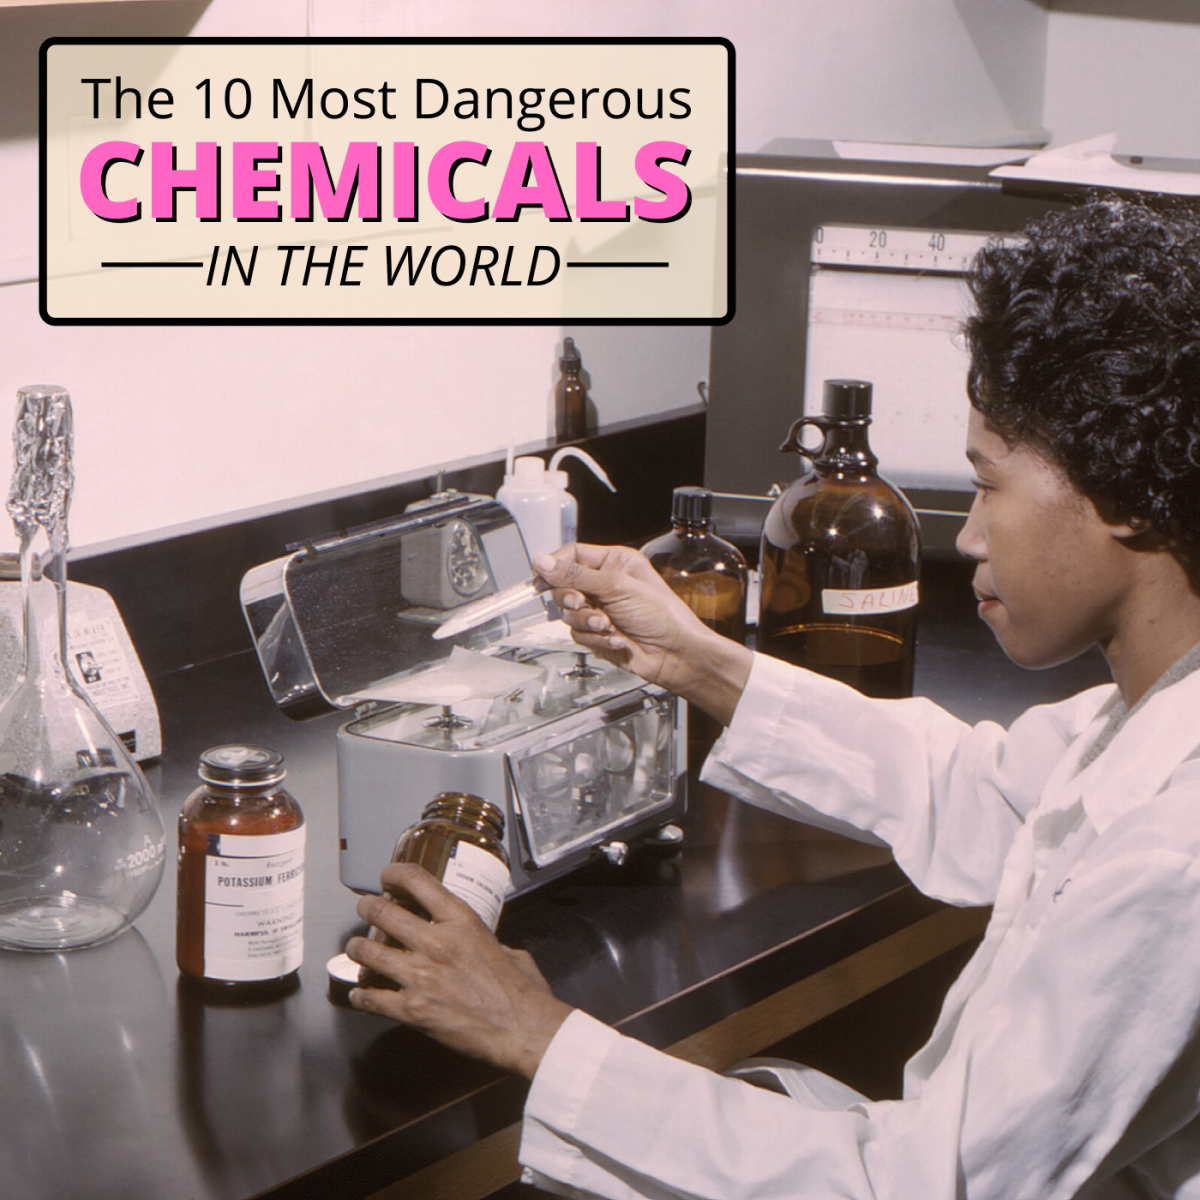 The 10 chemicals listed below are some of the most poisonous, explosive, corrosive and downright dangerous in existence.